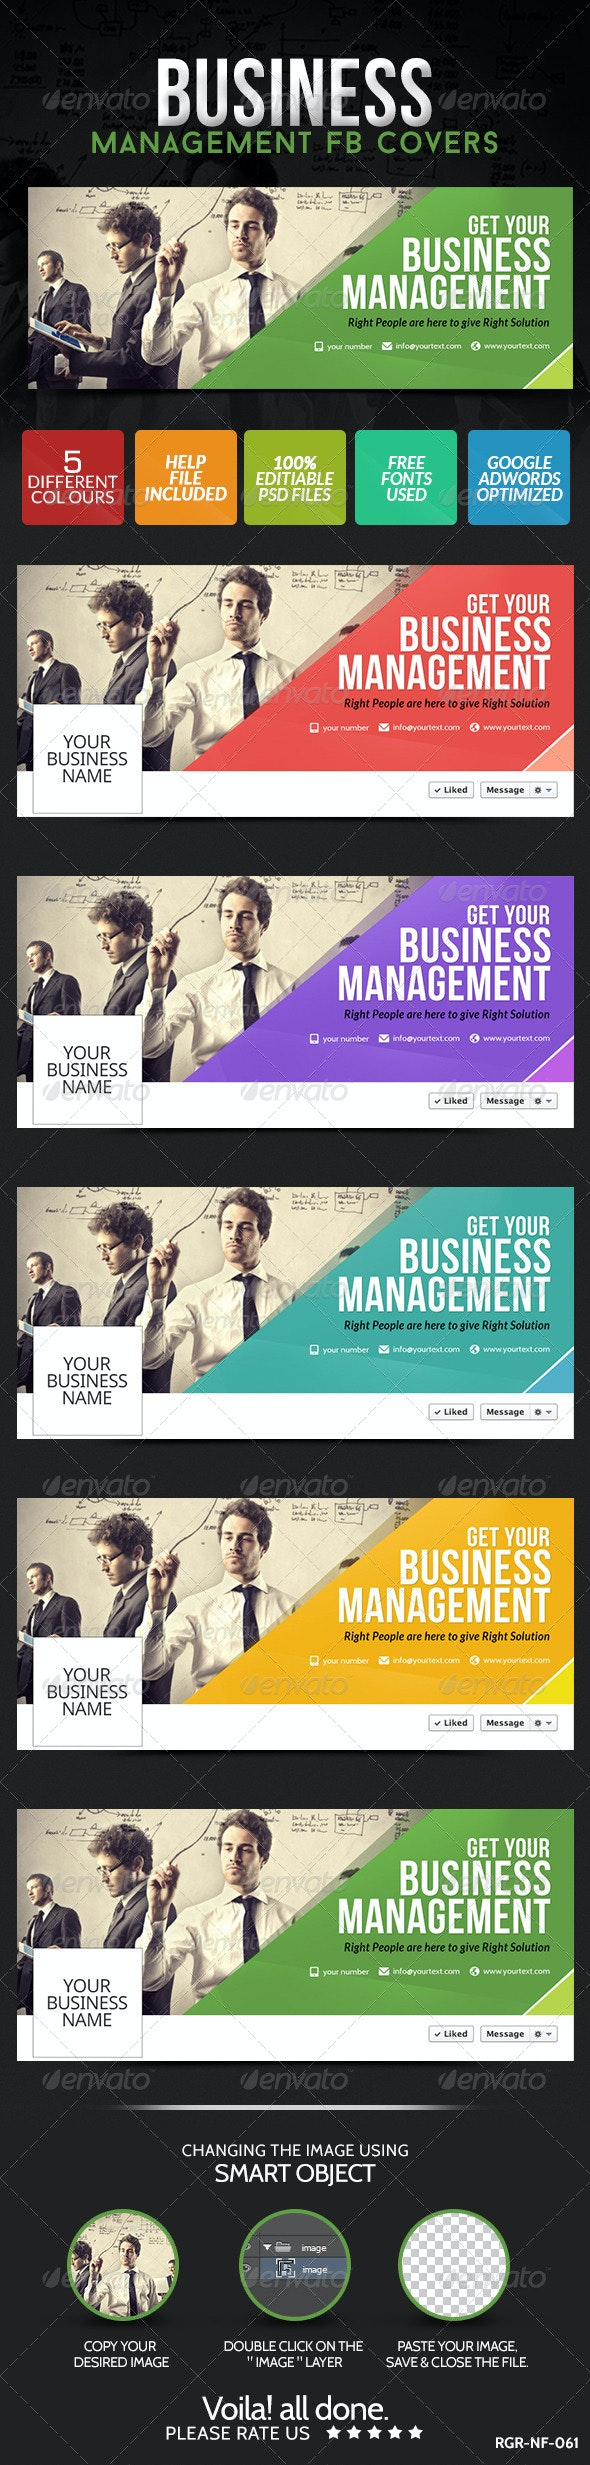 Business Facebook Covers - 5 Colors - Facebook Timeline Covers Social Media